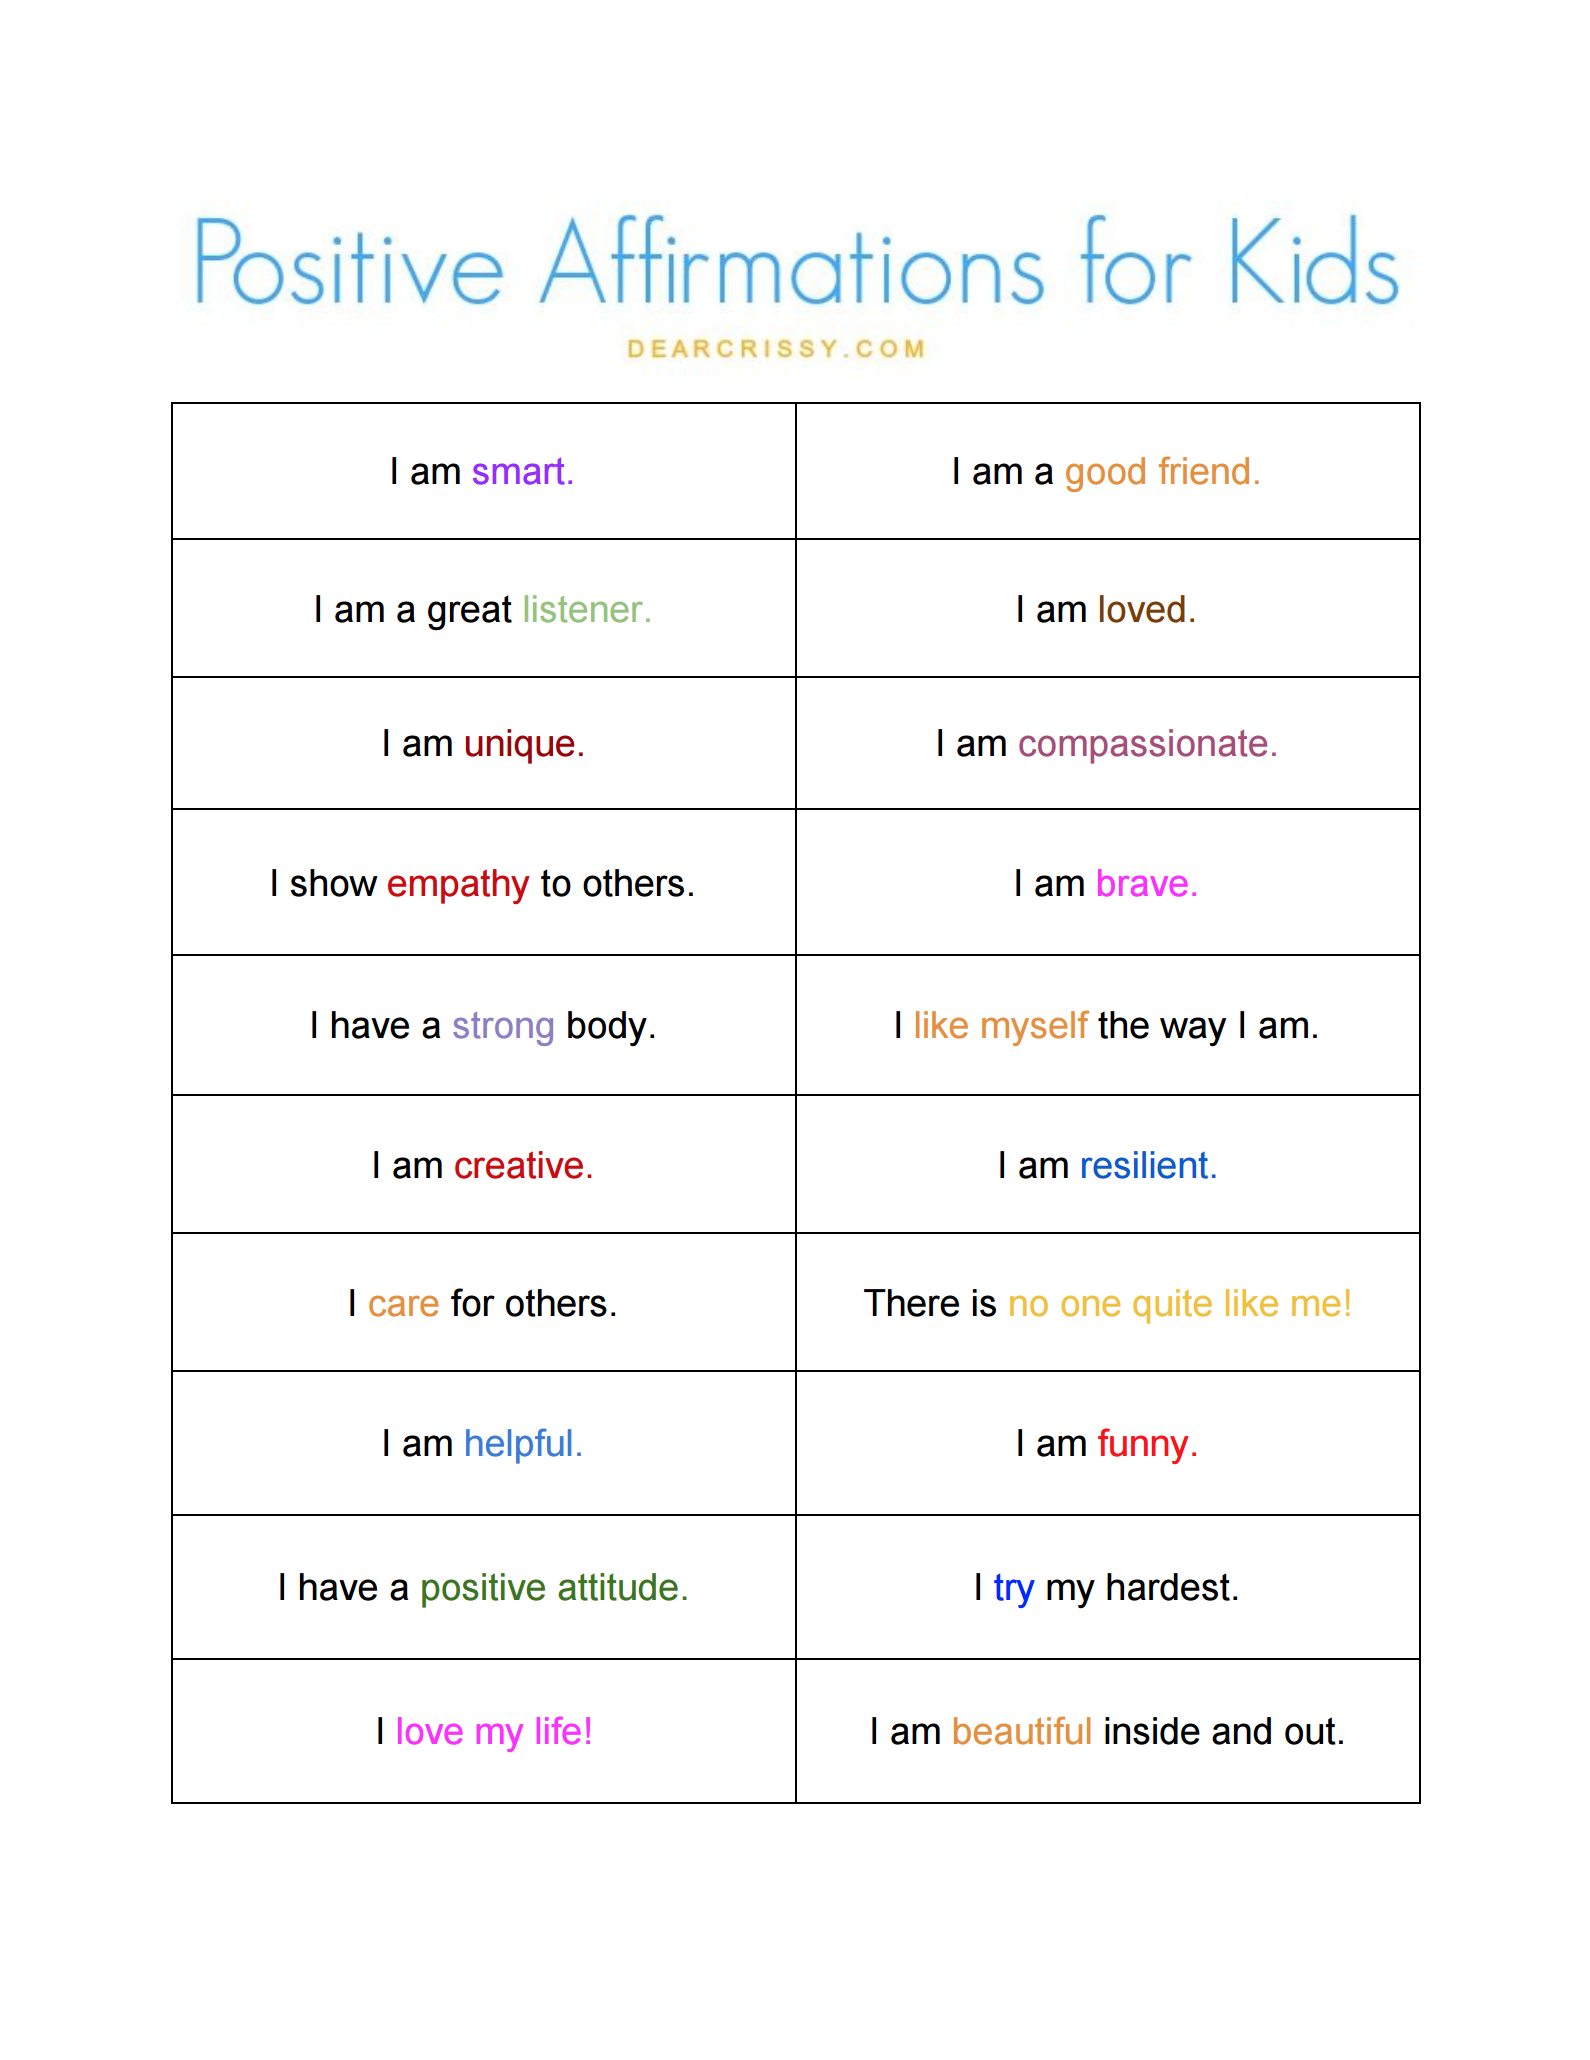 positive affirmations for kids free printable these positive affirmations for kids are great to cut